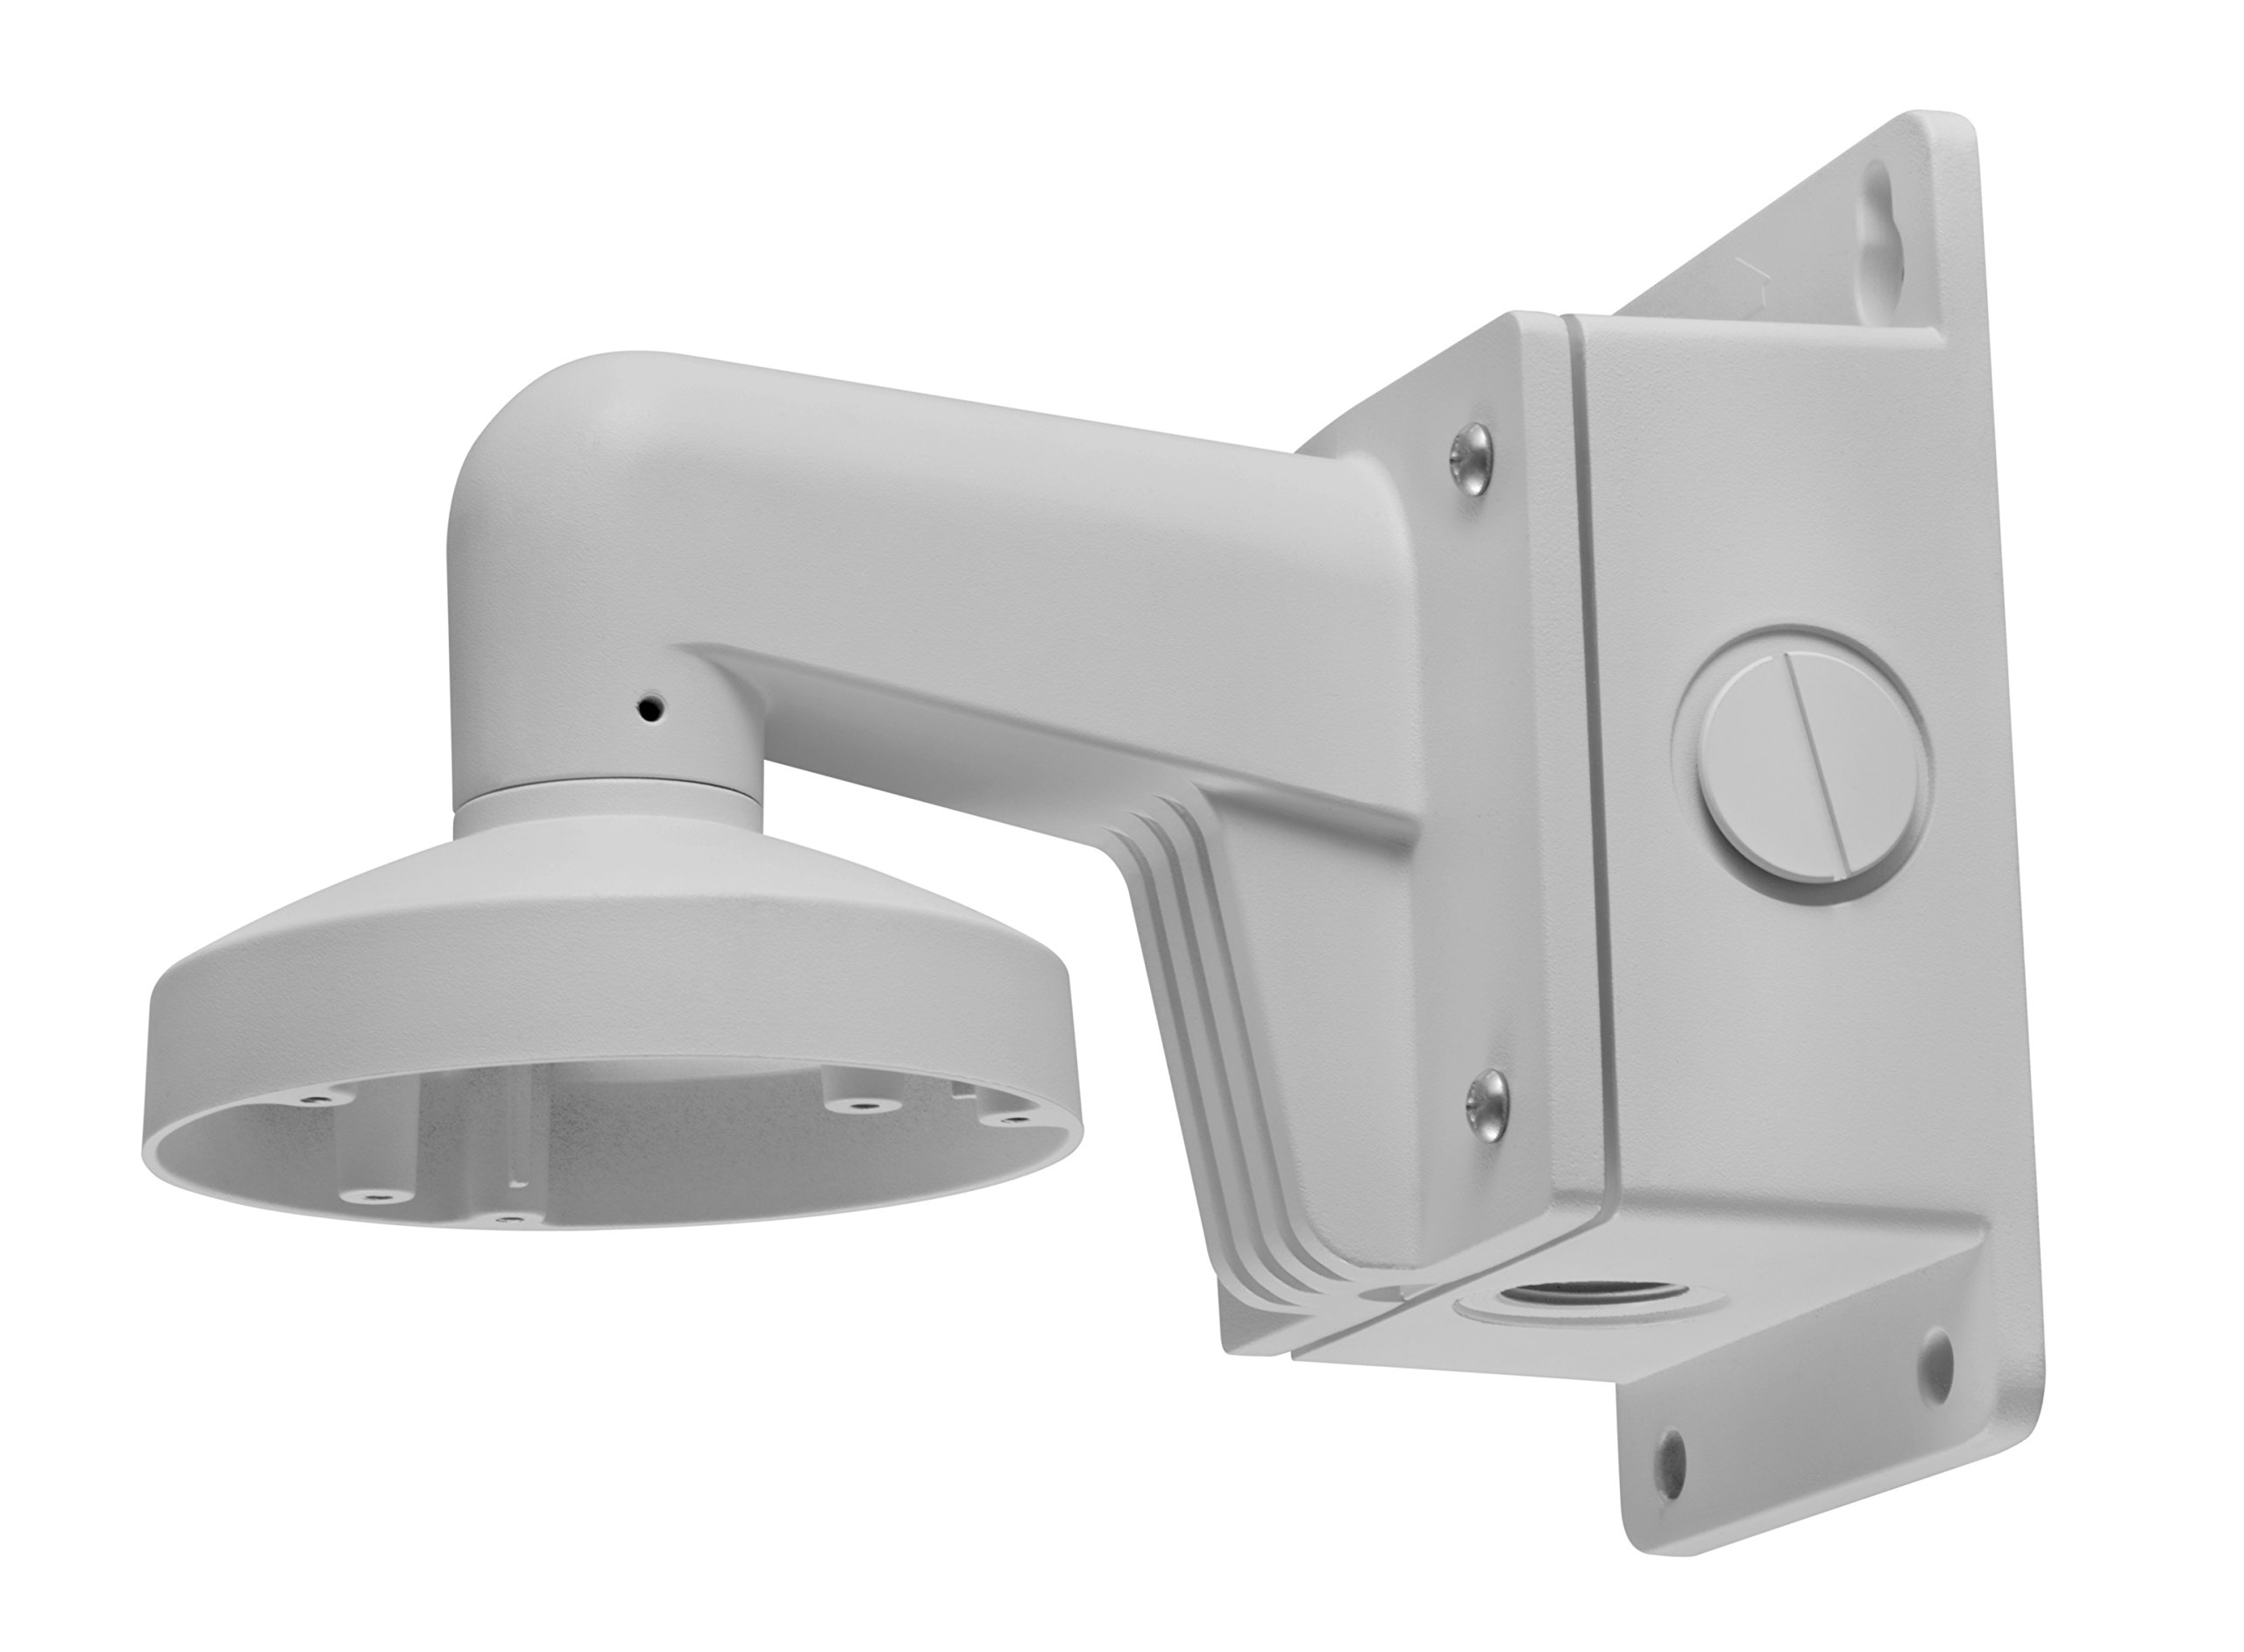 WMS WML PC110B DS-1272ZJ-110B Wall Mount Bracket for Hikvision Dome Camera DS-2CD2142FWD-I (1 Pack) by KENUCO